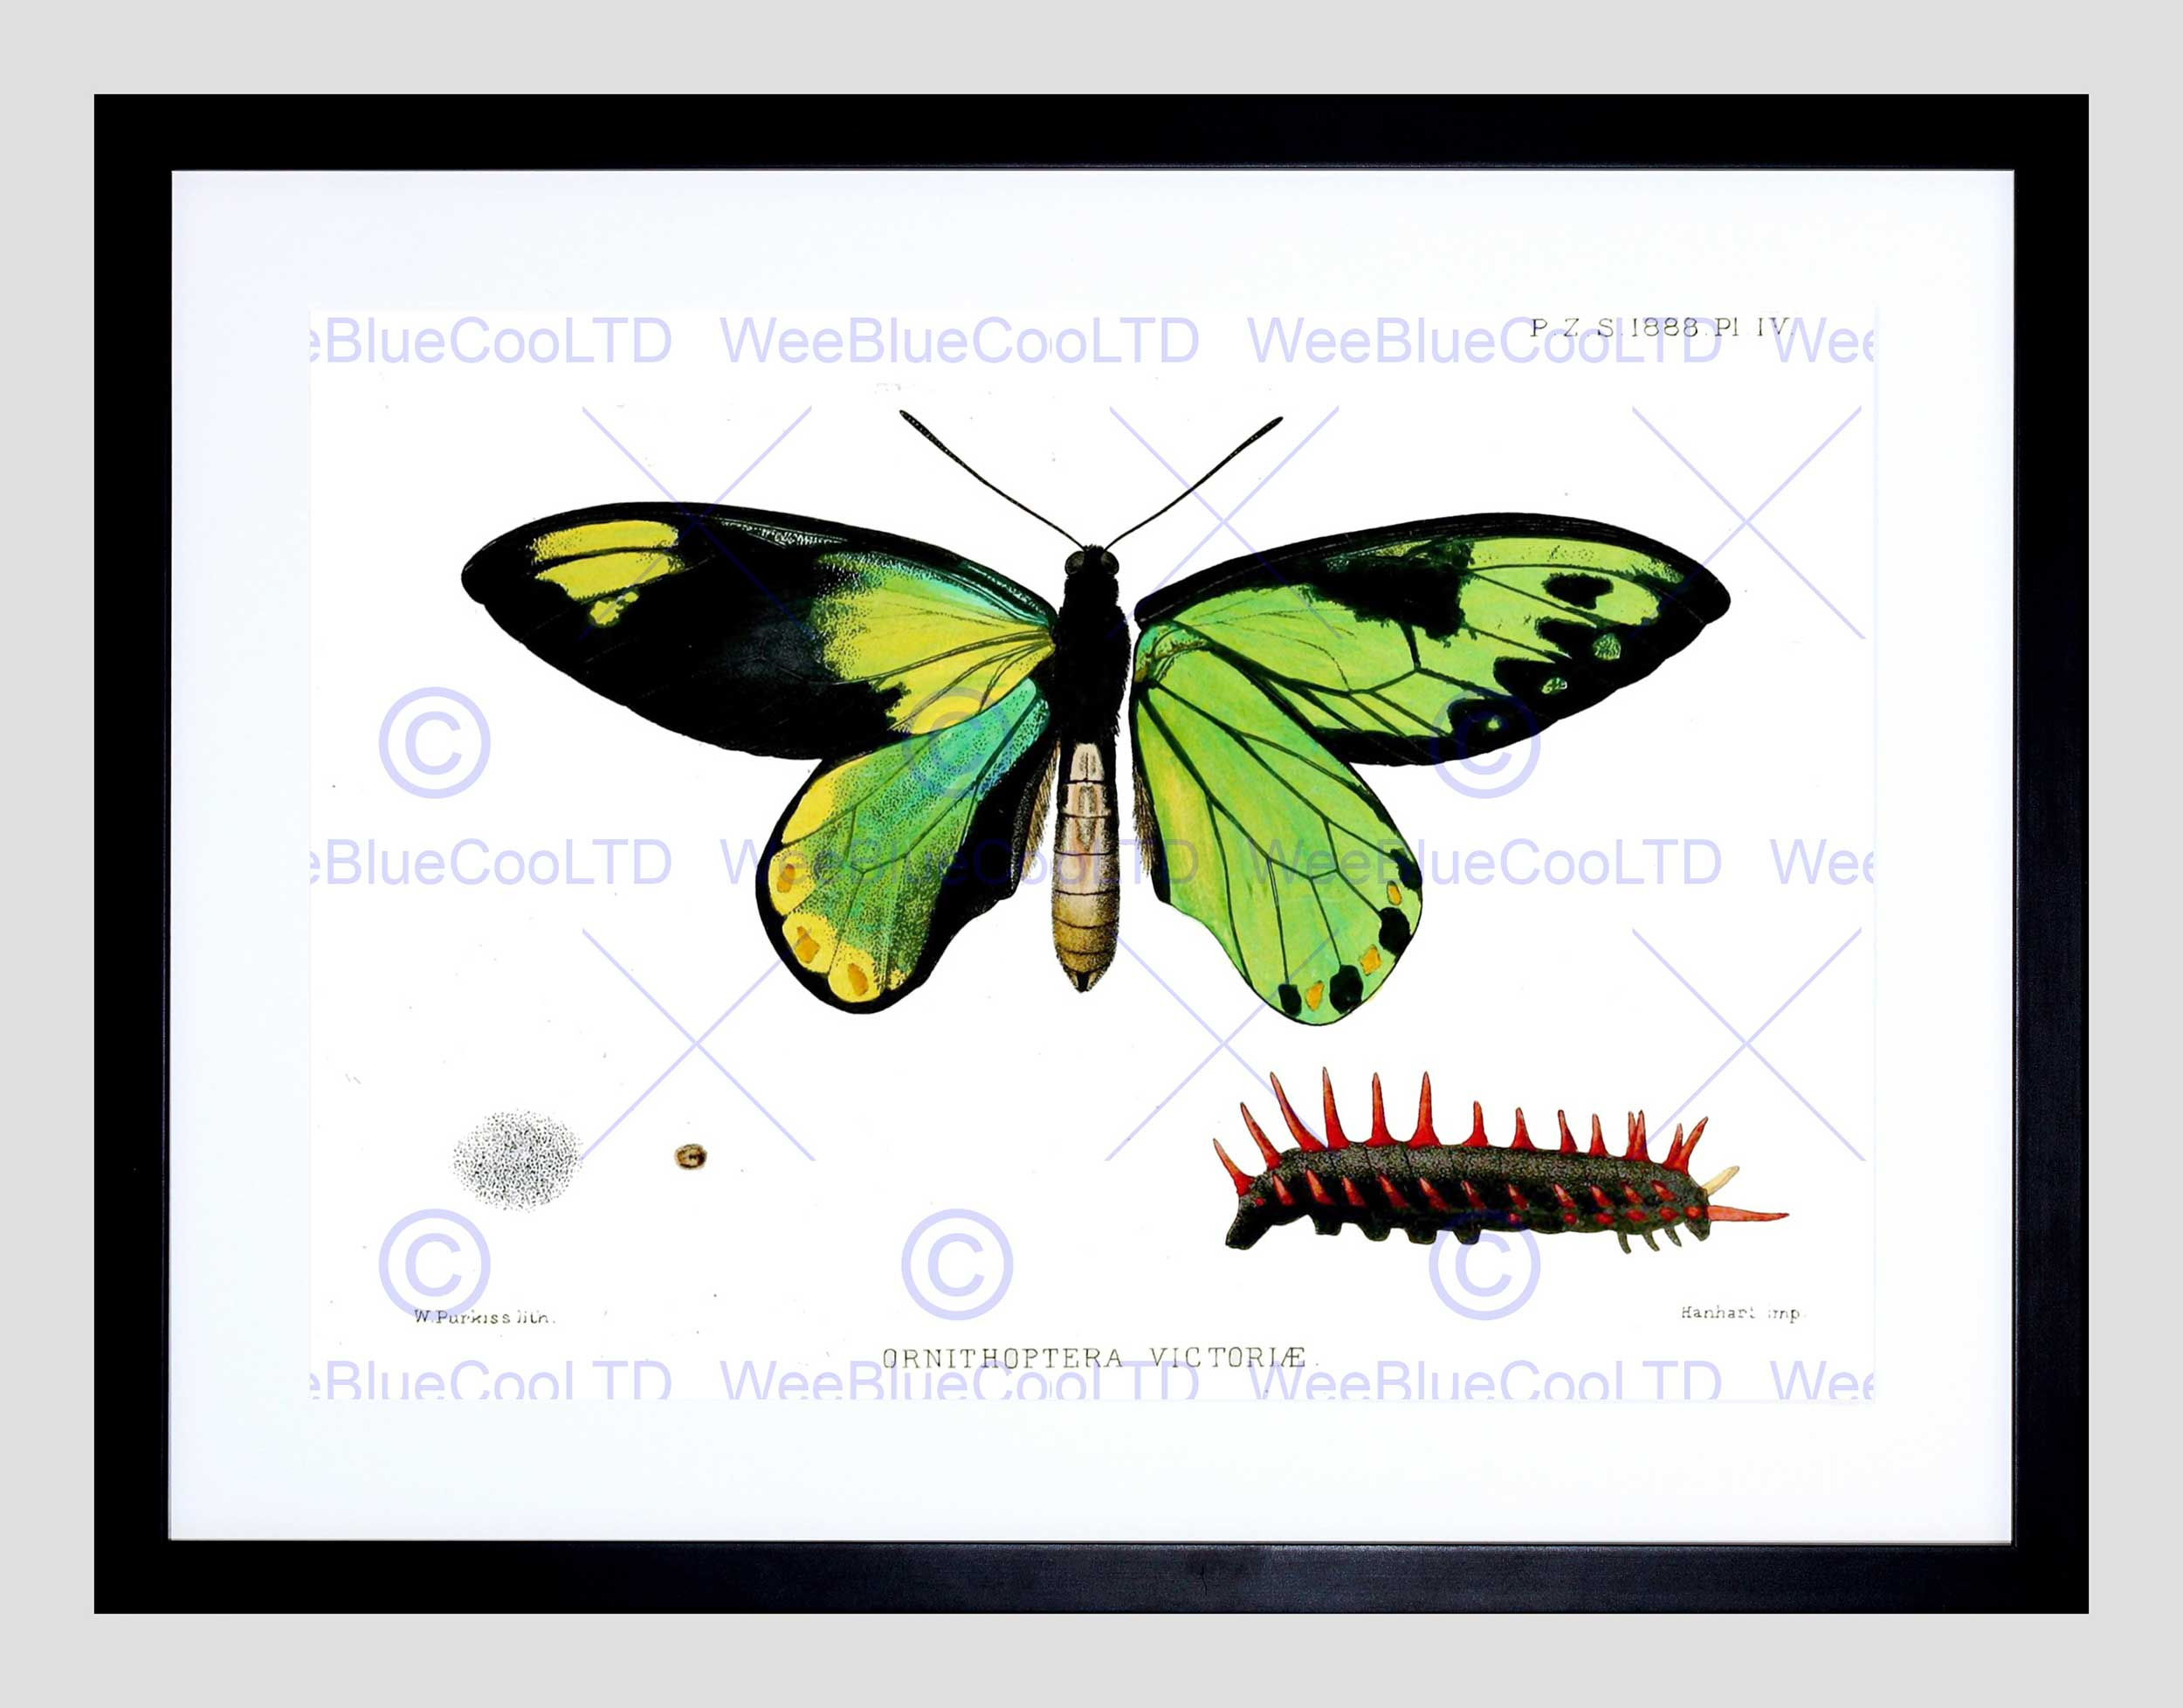 2500x1956 Scientific Drawing Butterfly Caterpillar Ornithoptera Victoriae